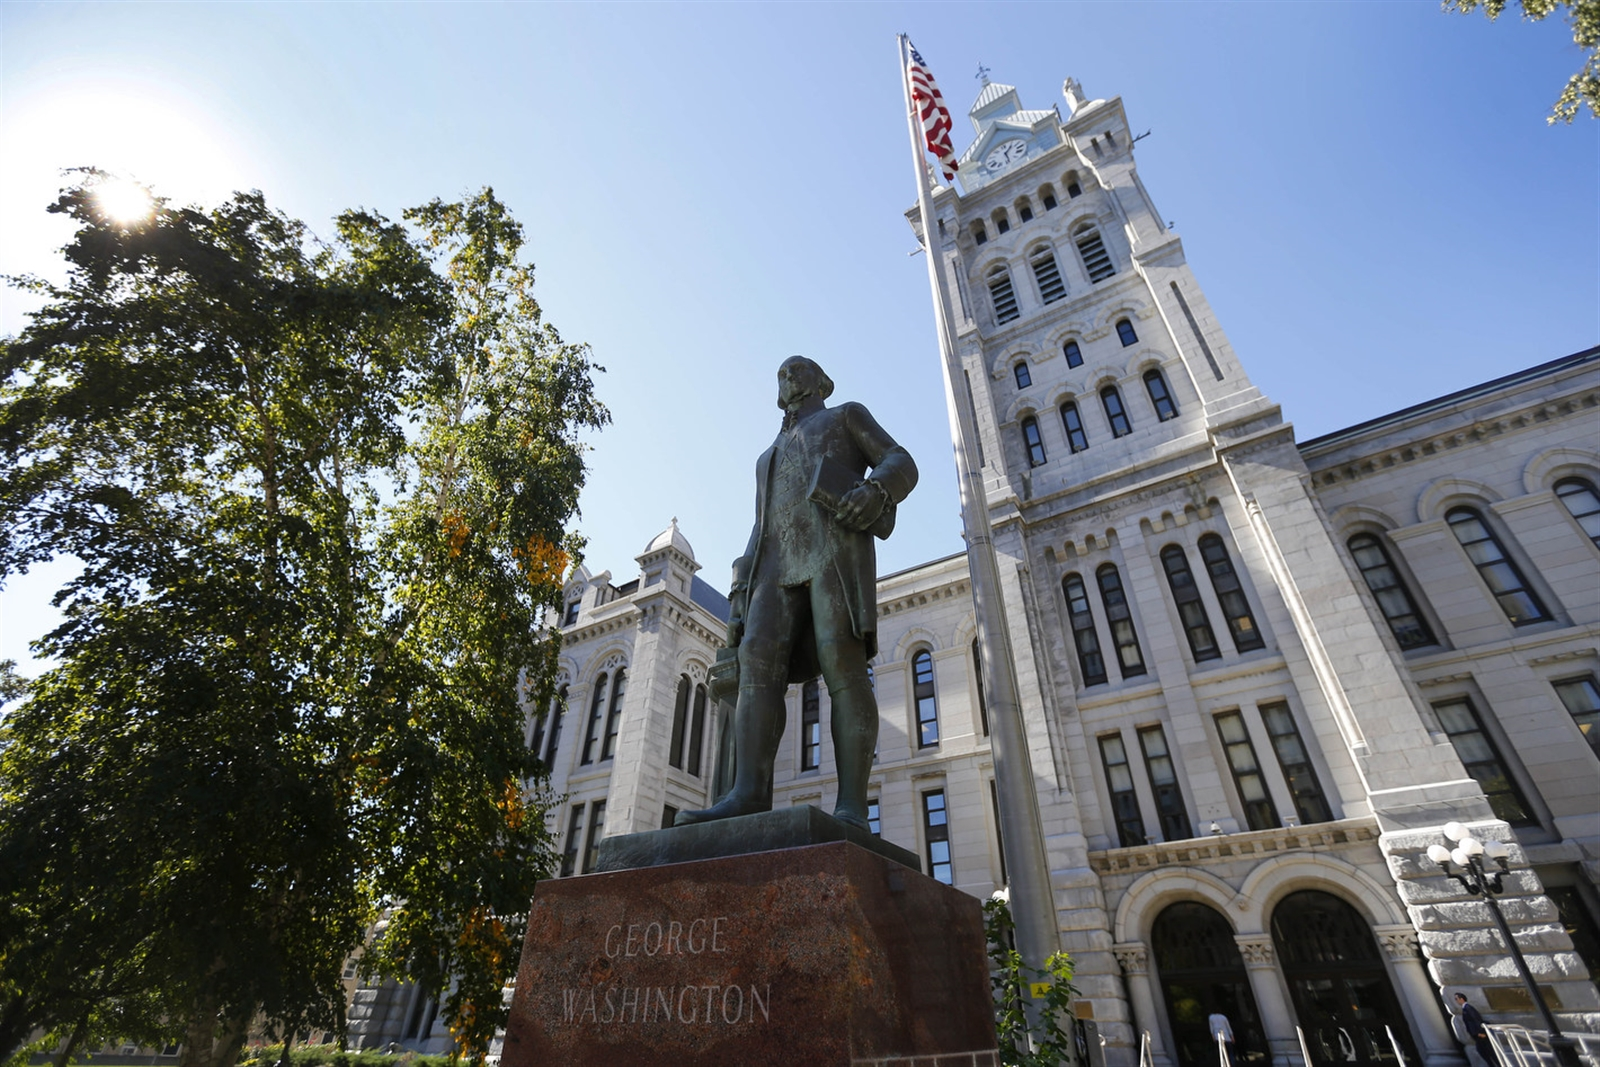 A statue of George Washington stands in front of Old Erie County Hall on Franklin Street in Buffalo. The statue was erected by the Erie County Masonic Foundation in celebration of the countries bicentennial in 1976.